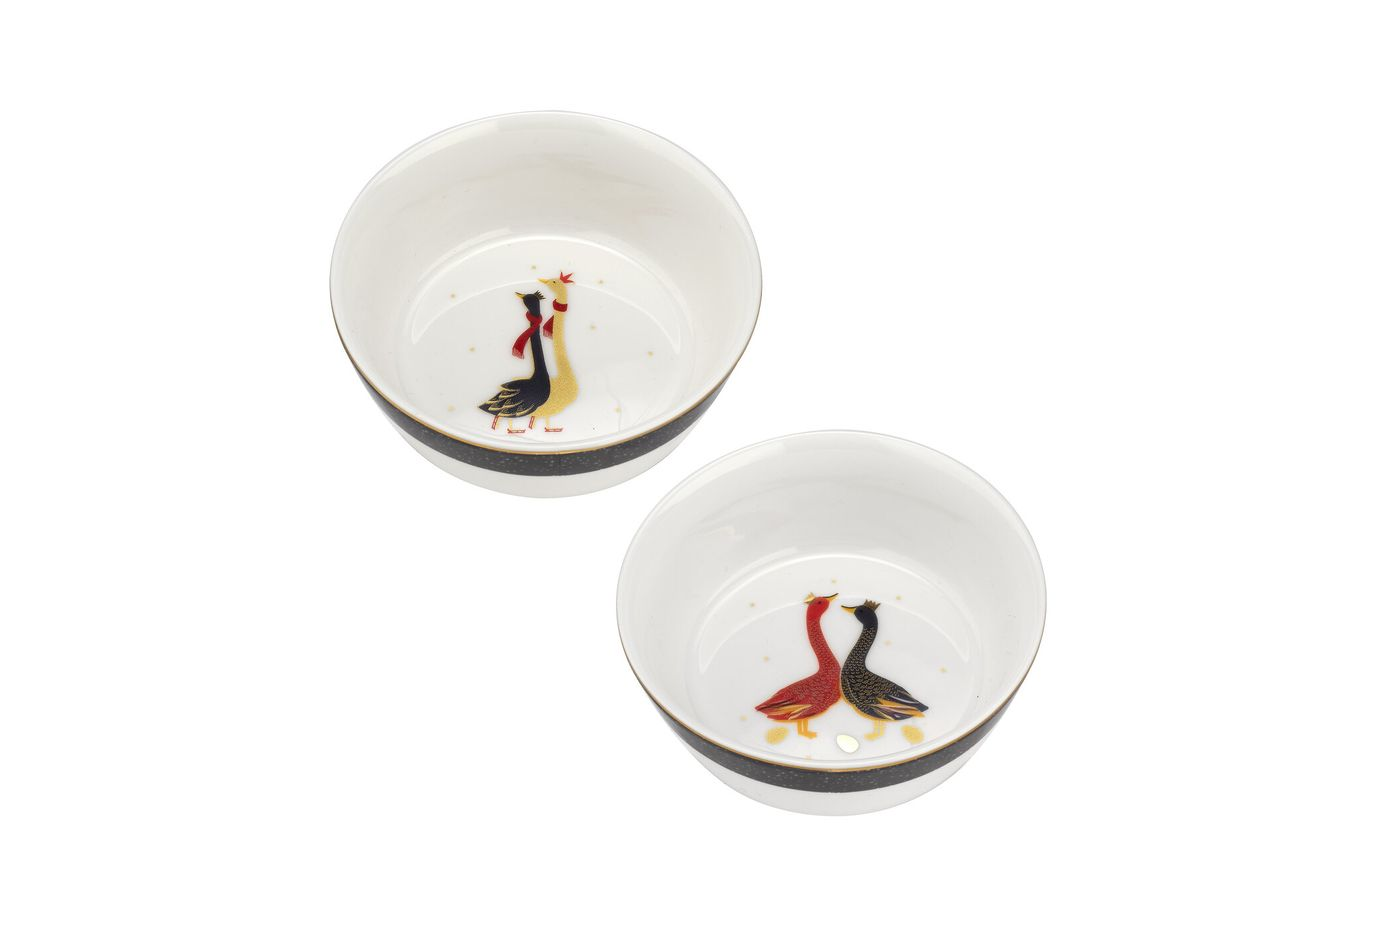 Sara Miller London for Portmeirion Geese Christmas Collection Set of 2 Bowls 10cm thumb 1